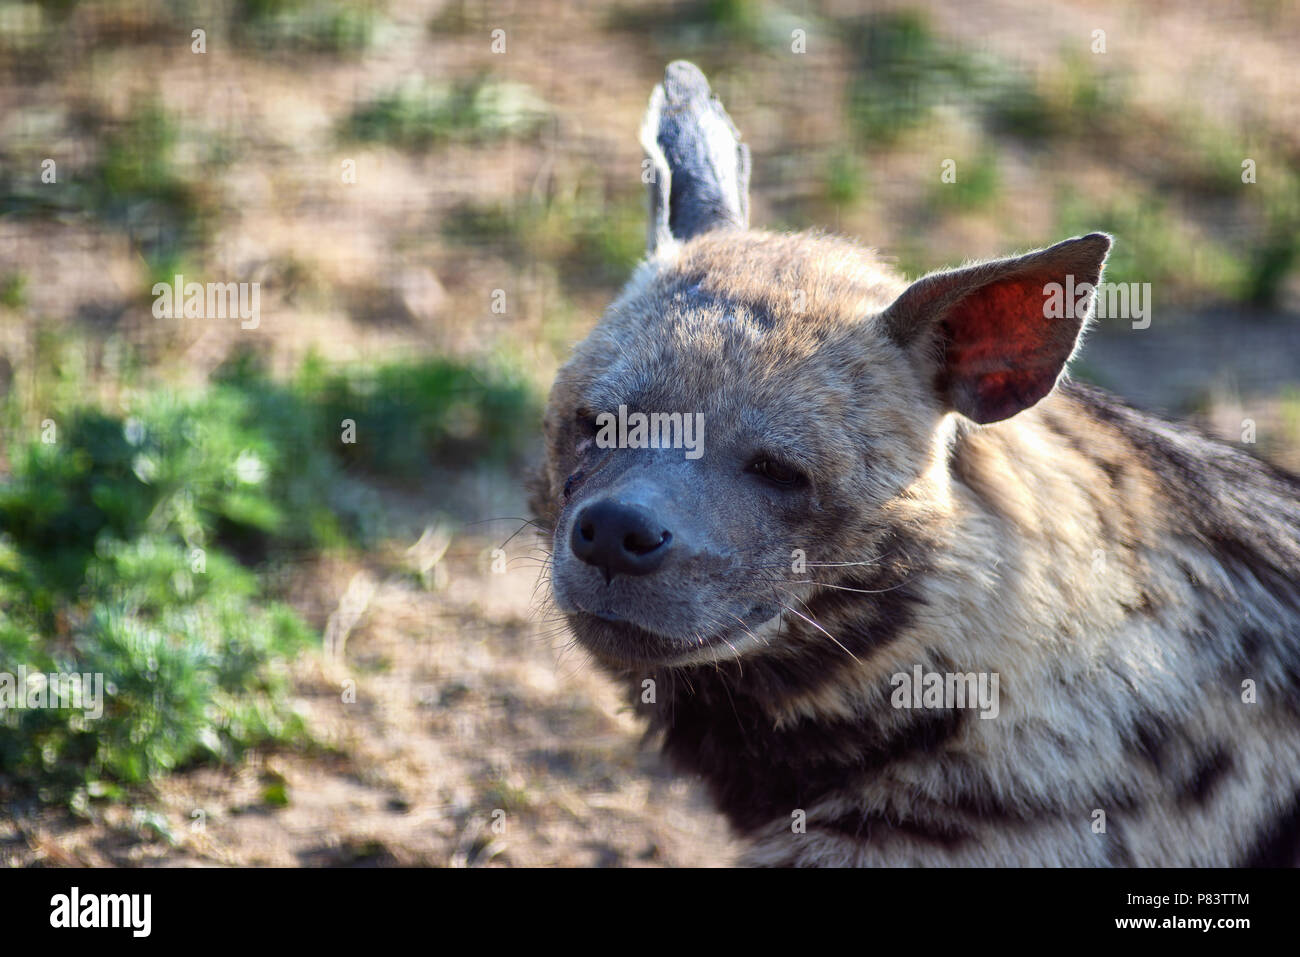 Tired hyena looks into the camera. Photo portrait of a wild animal. Stock Photo